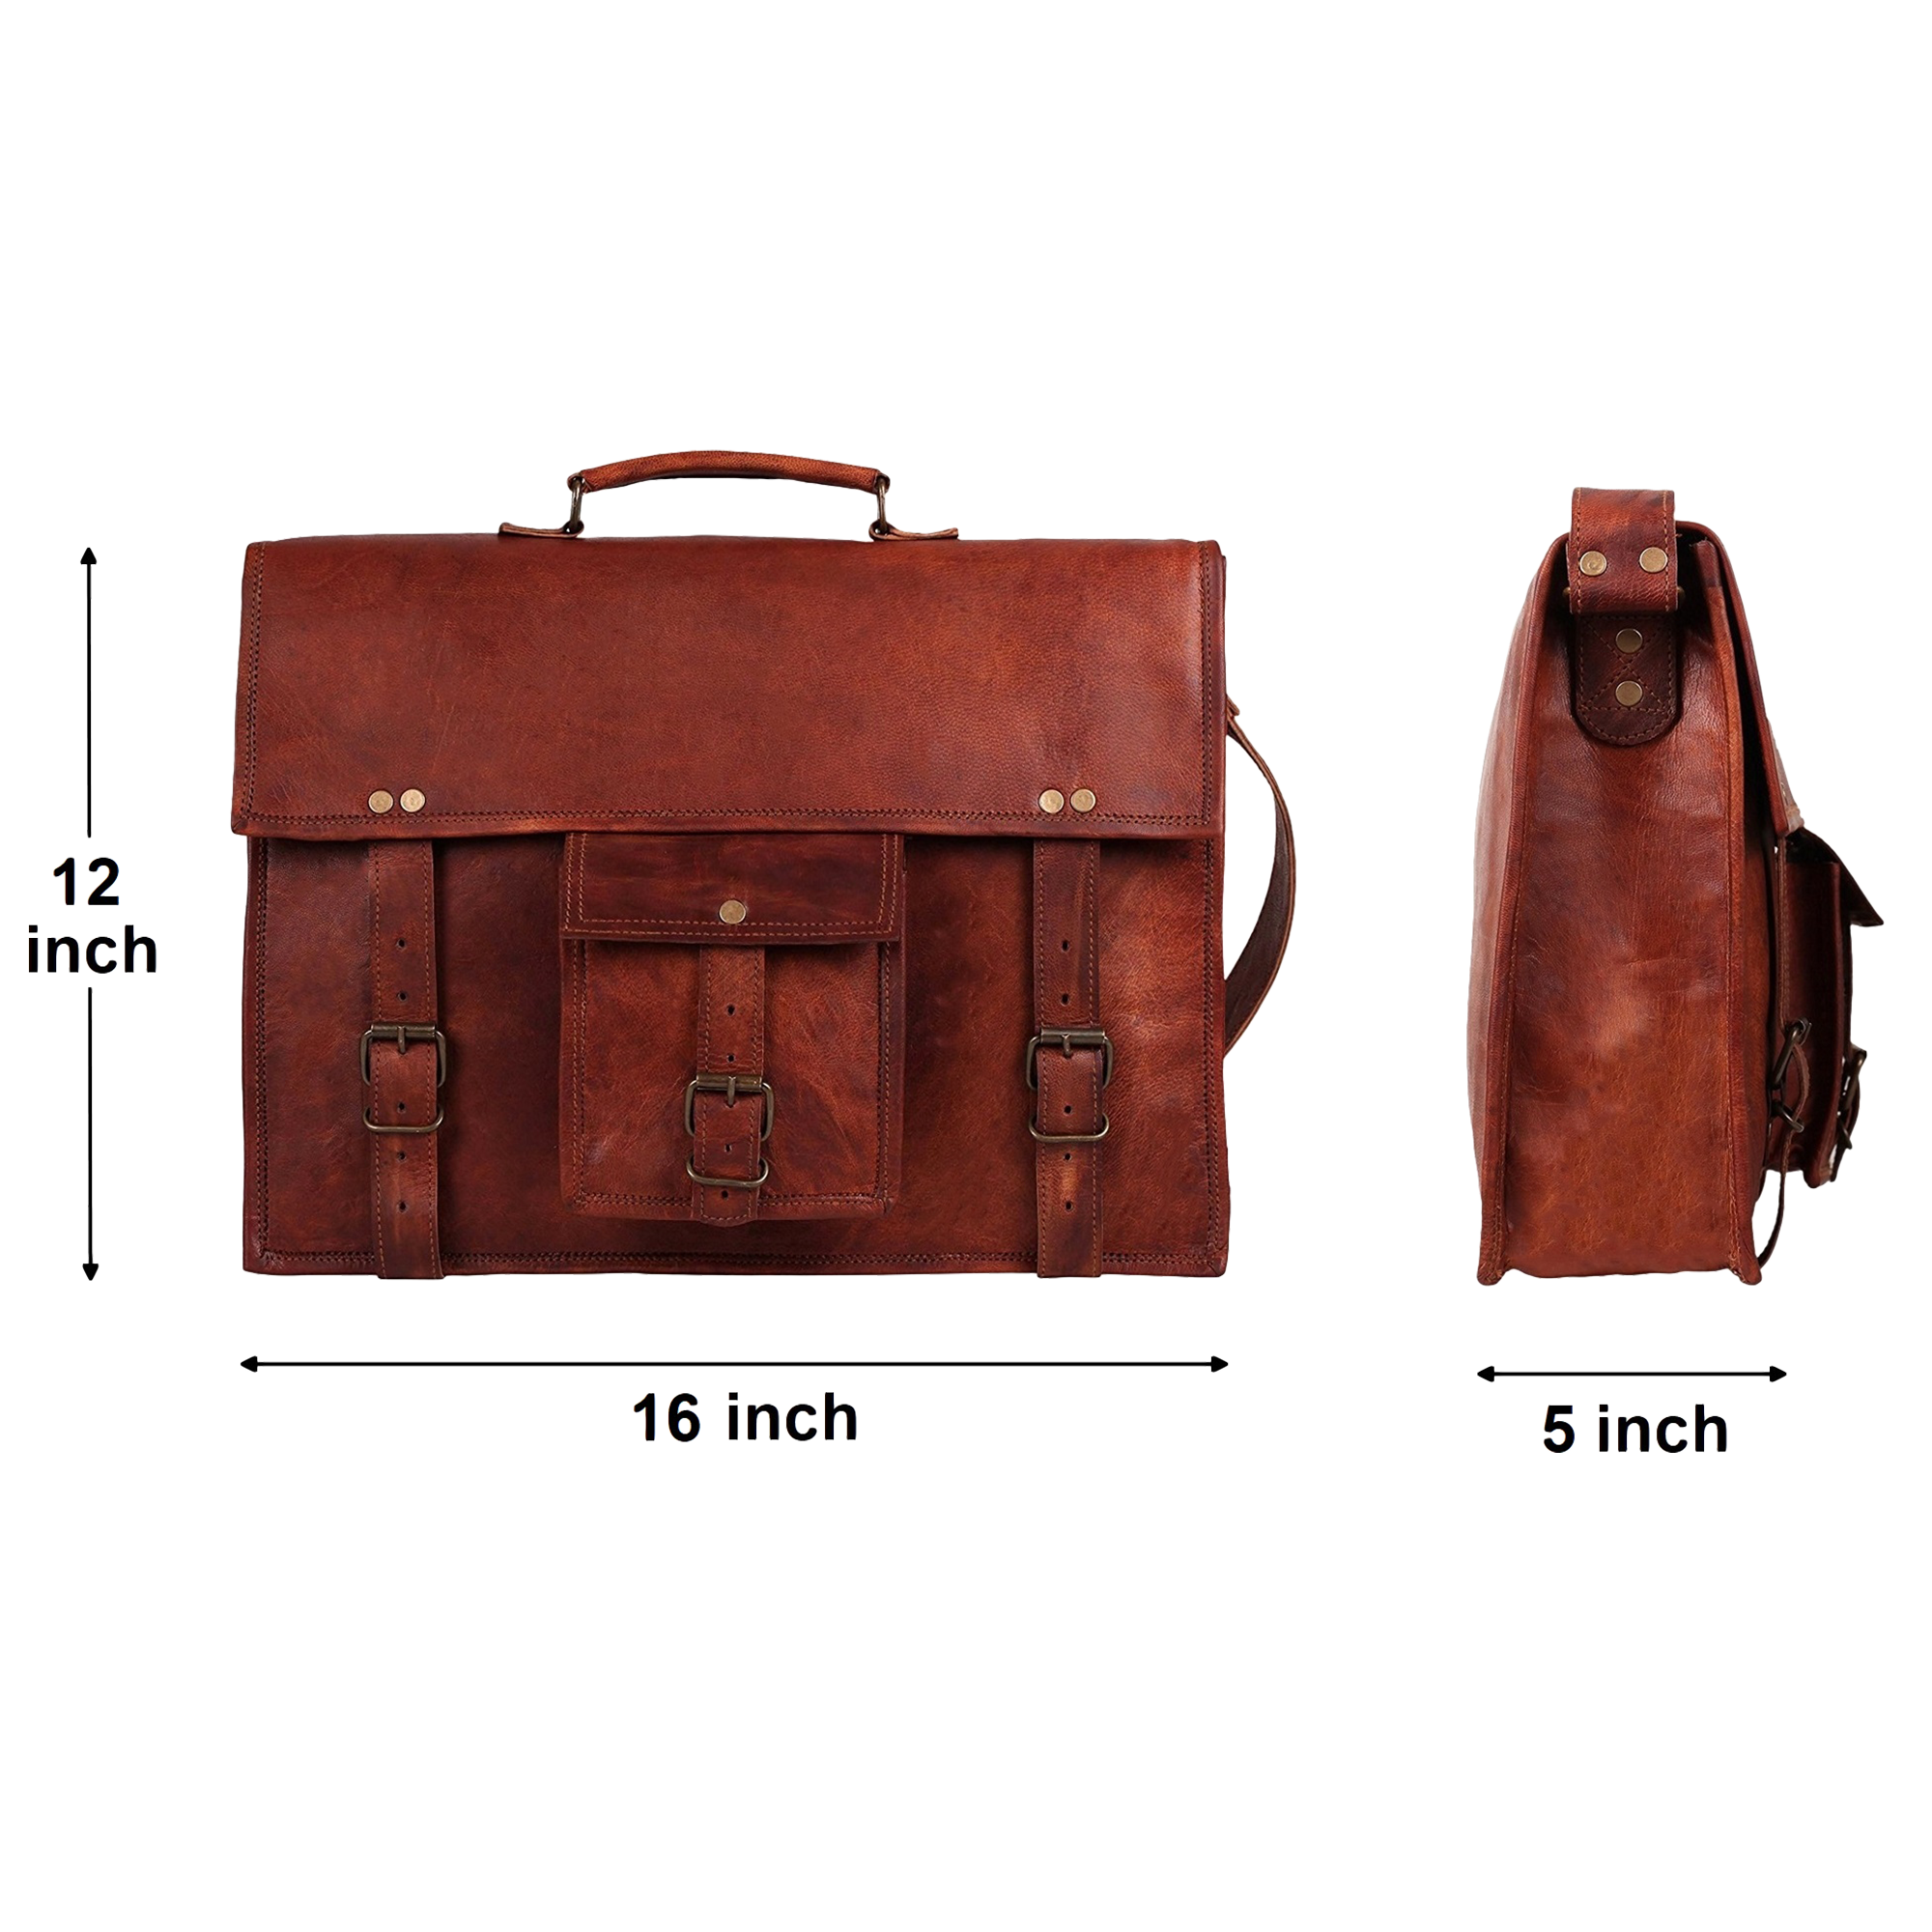 Beast Handmade Classic Leather Briefcase Satchel Laptop Messenger Bag (16 inch)